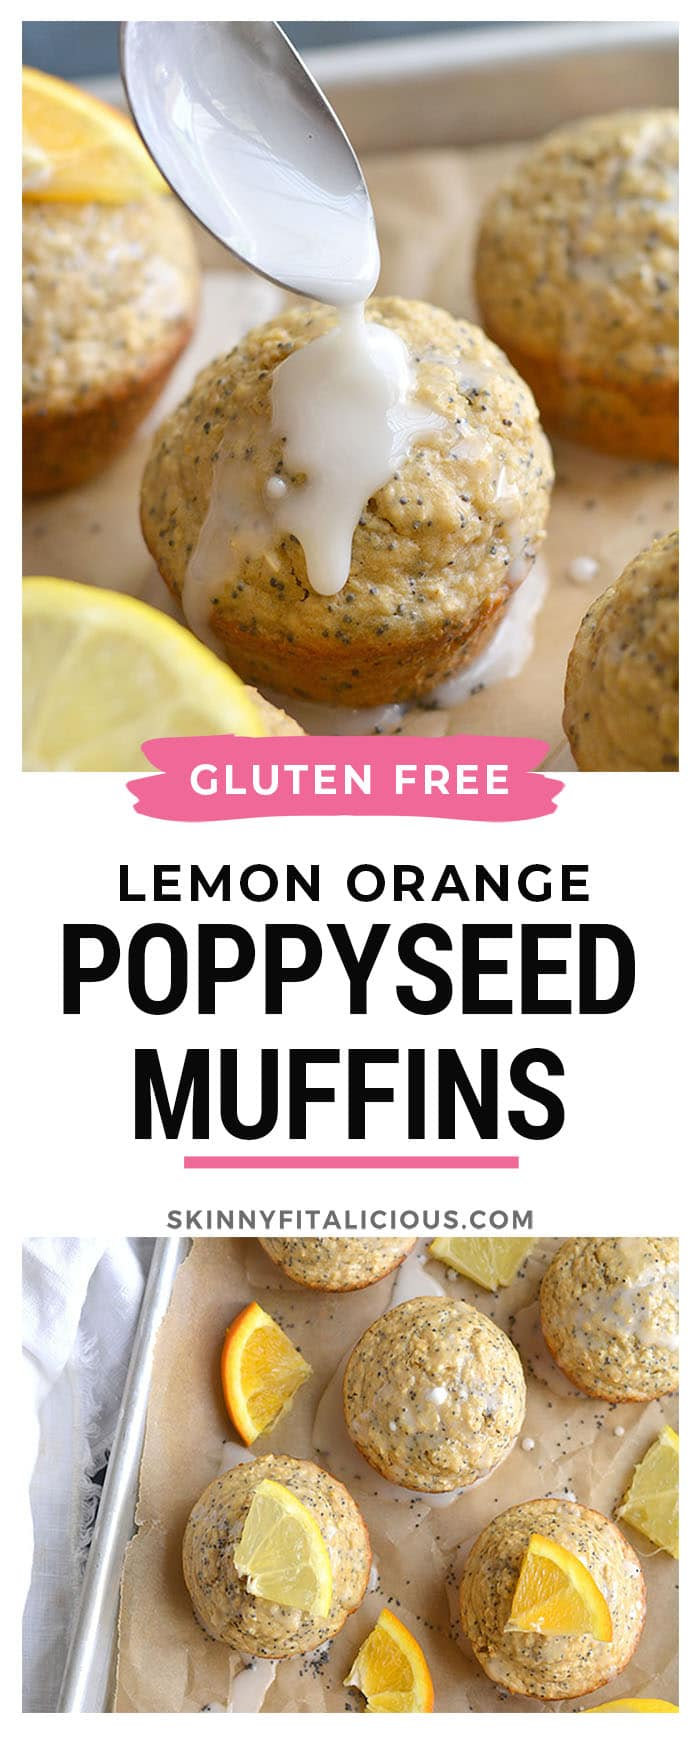 Lemon Orange Poppyseed Muffins! Lightly sweetened, creamy and bursting with citrus flavor. These muffins are quick to make, super soft and are a healthier treat! Gluten Free + Low Calorie